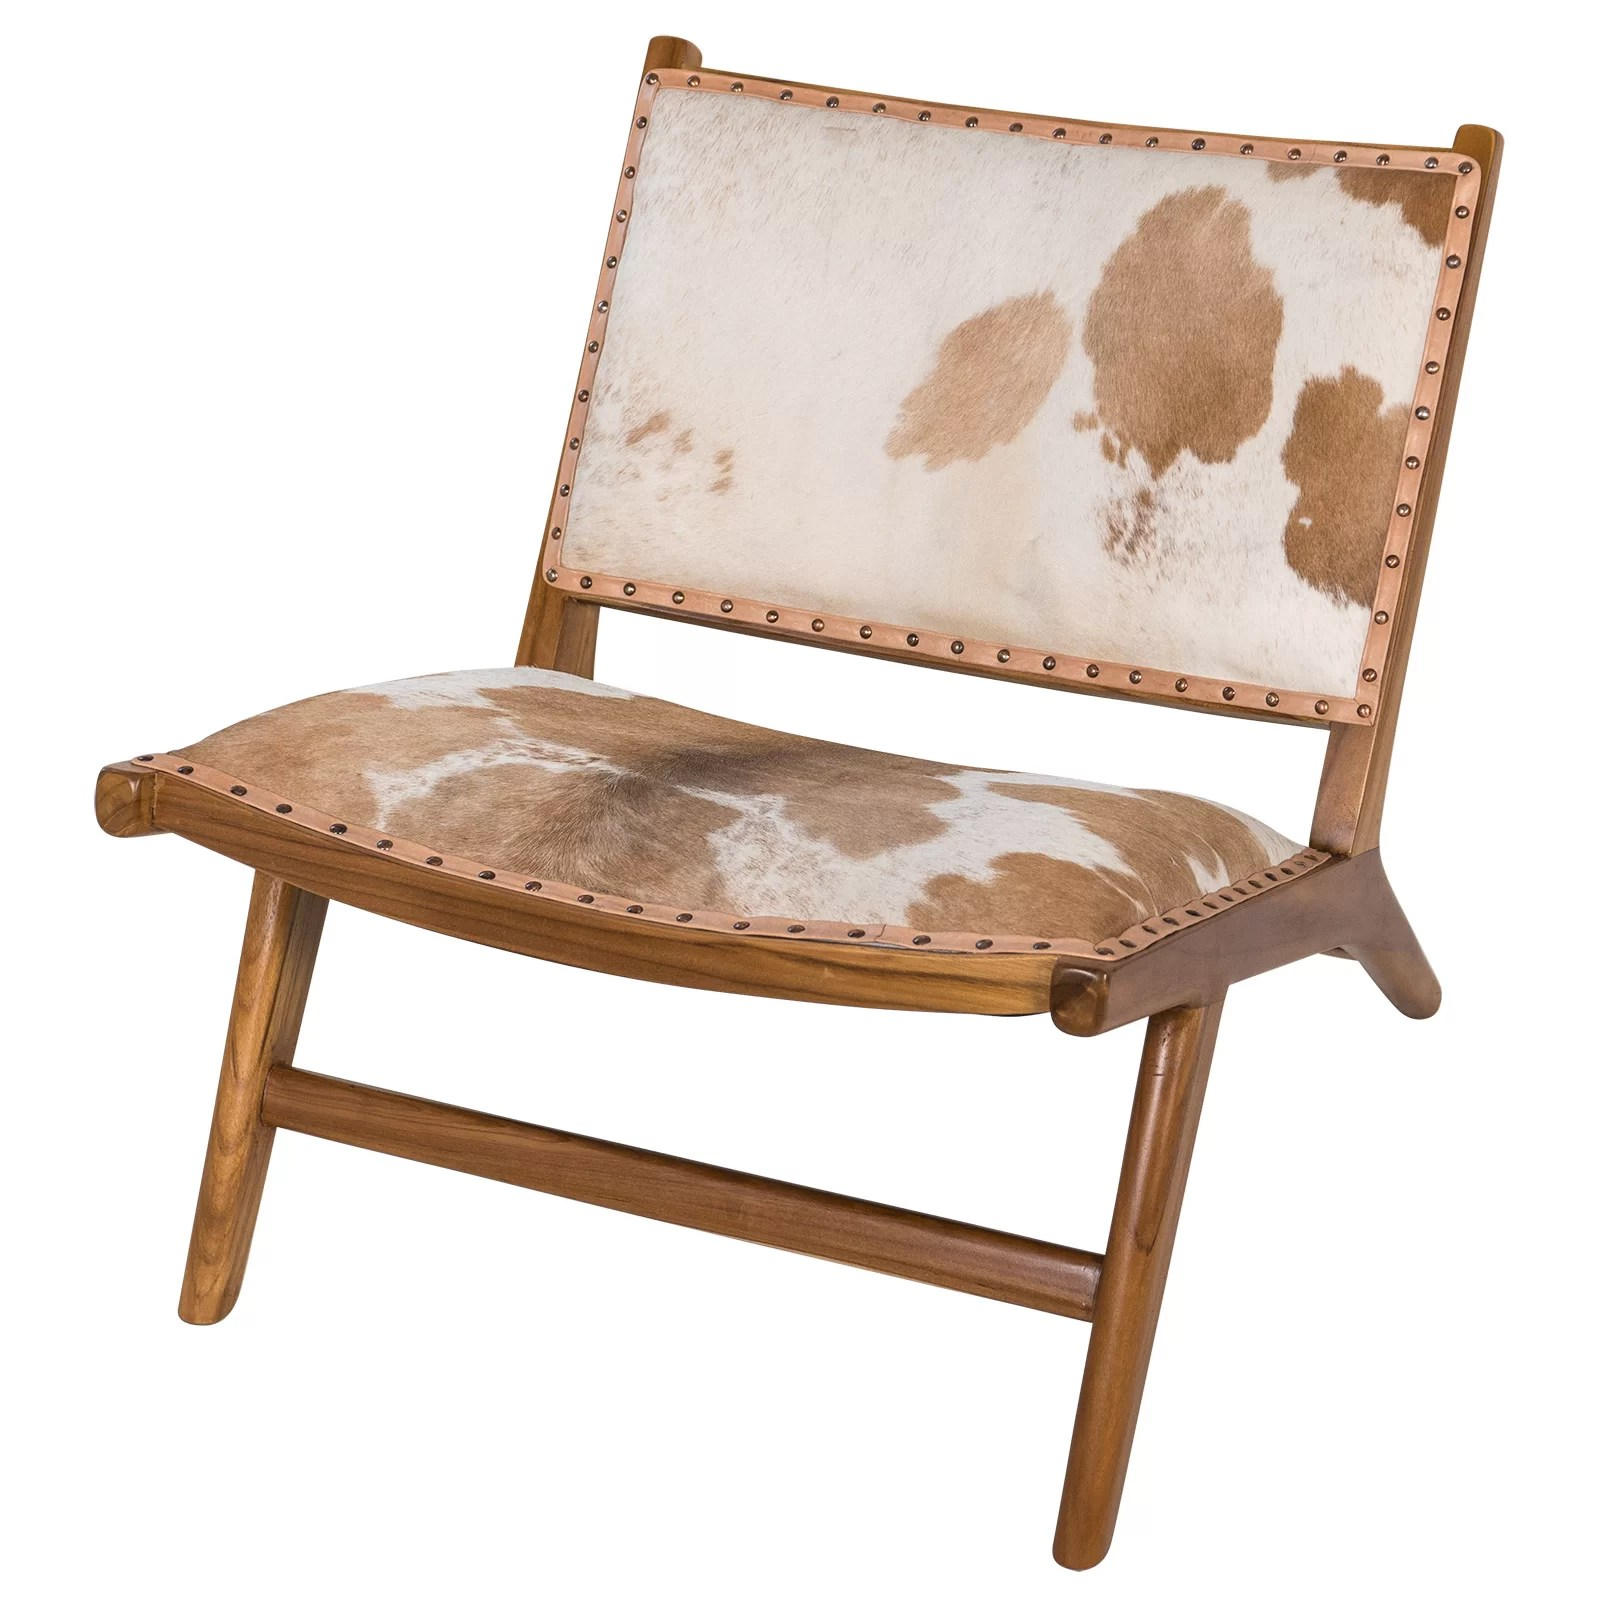 Cow Hide Chair Harley Low Rider Cowhide Guest Chair